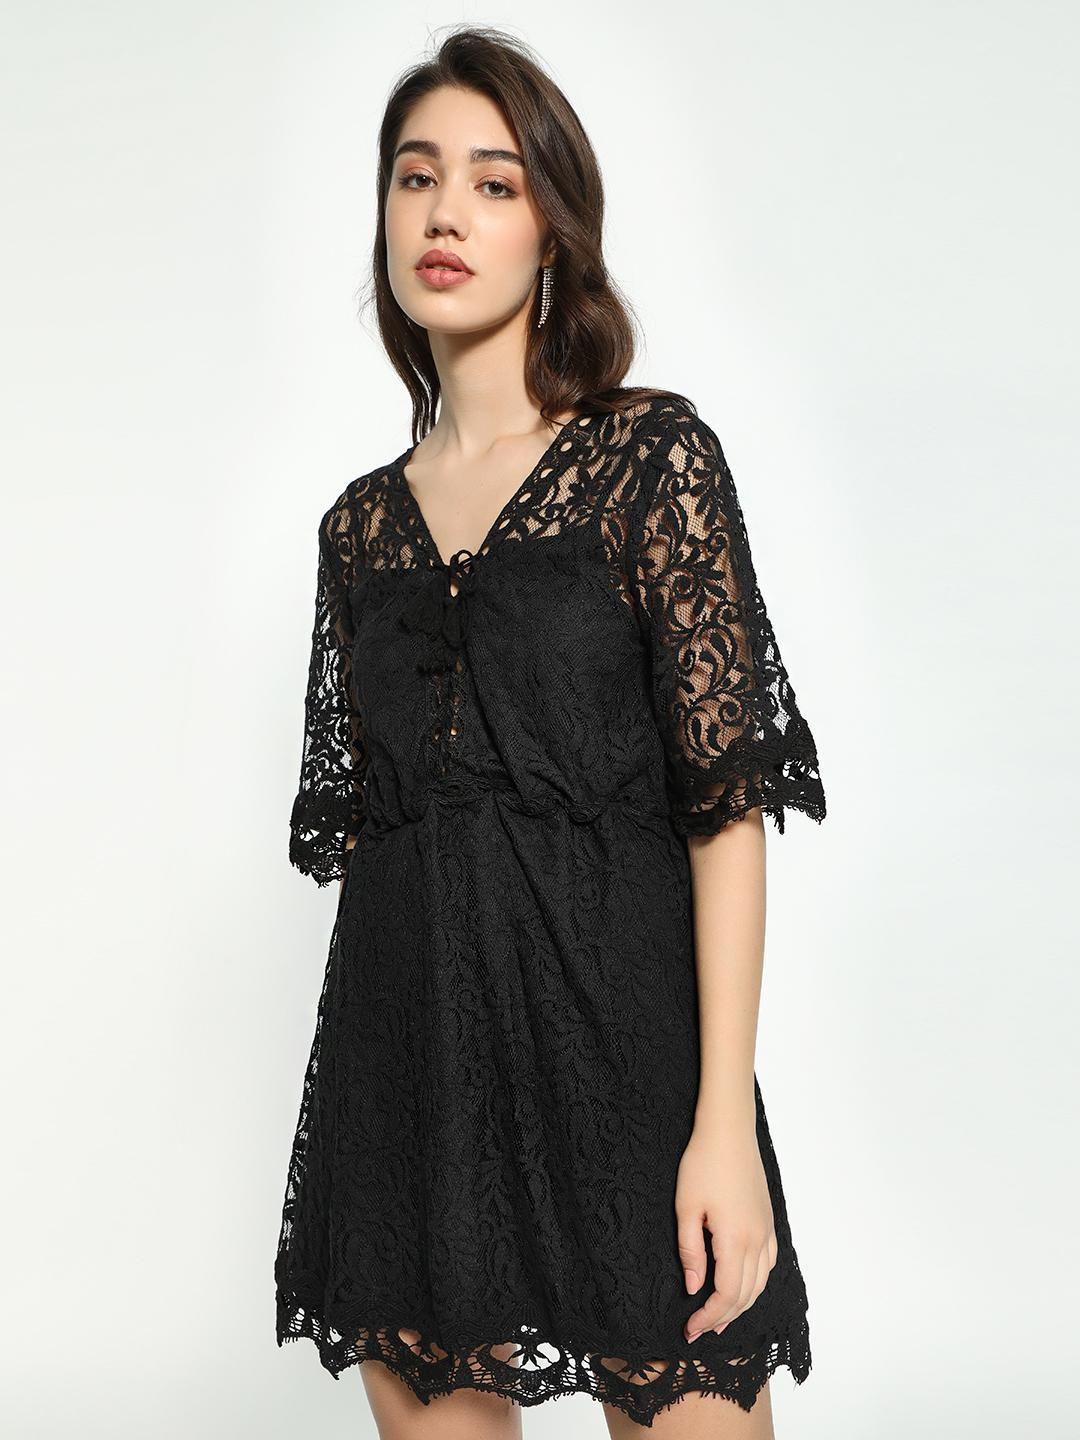 KOOVS Black Crochet Lace Mesh Skater Dress 1